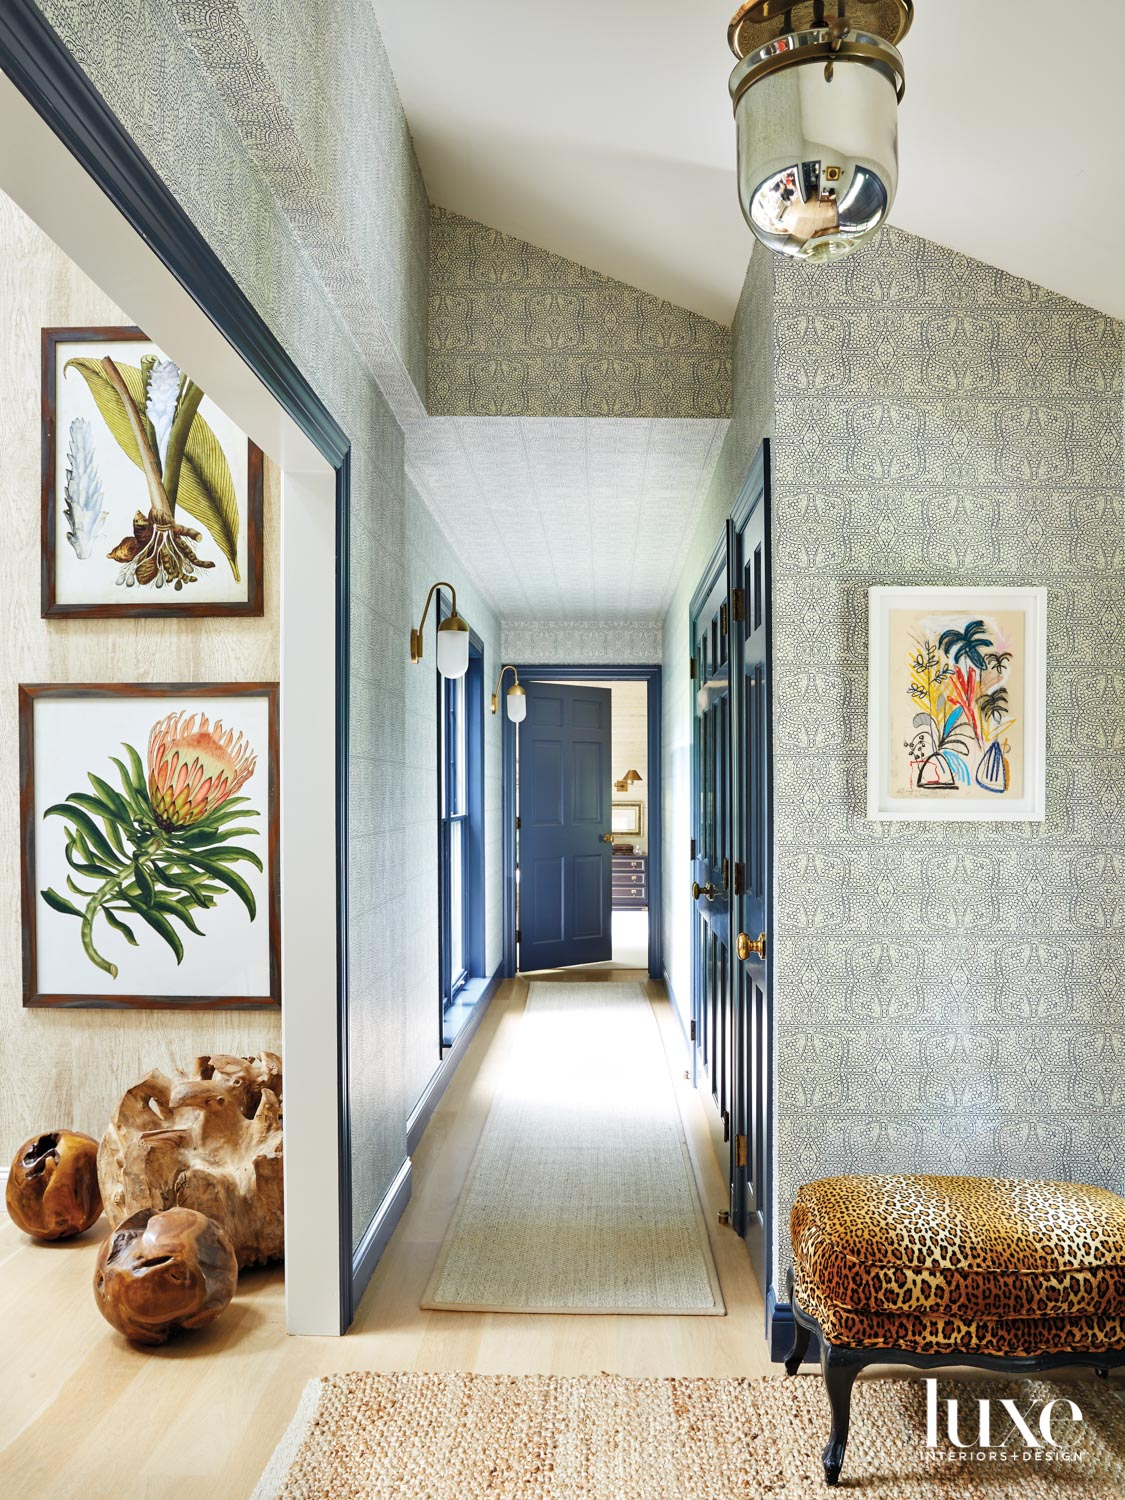 Wallpapered hallway with antique accents